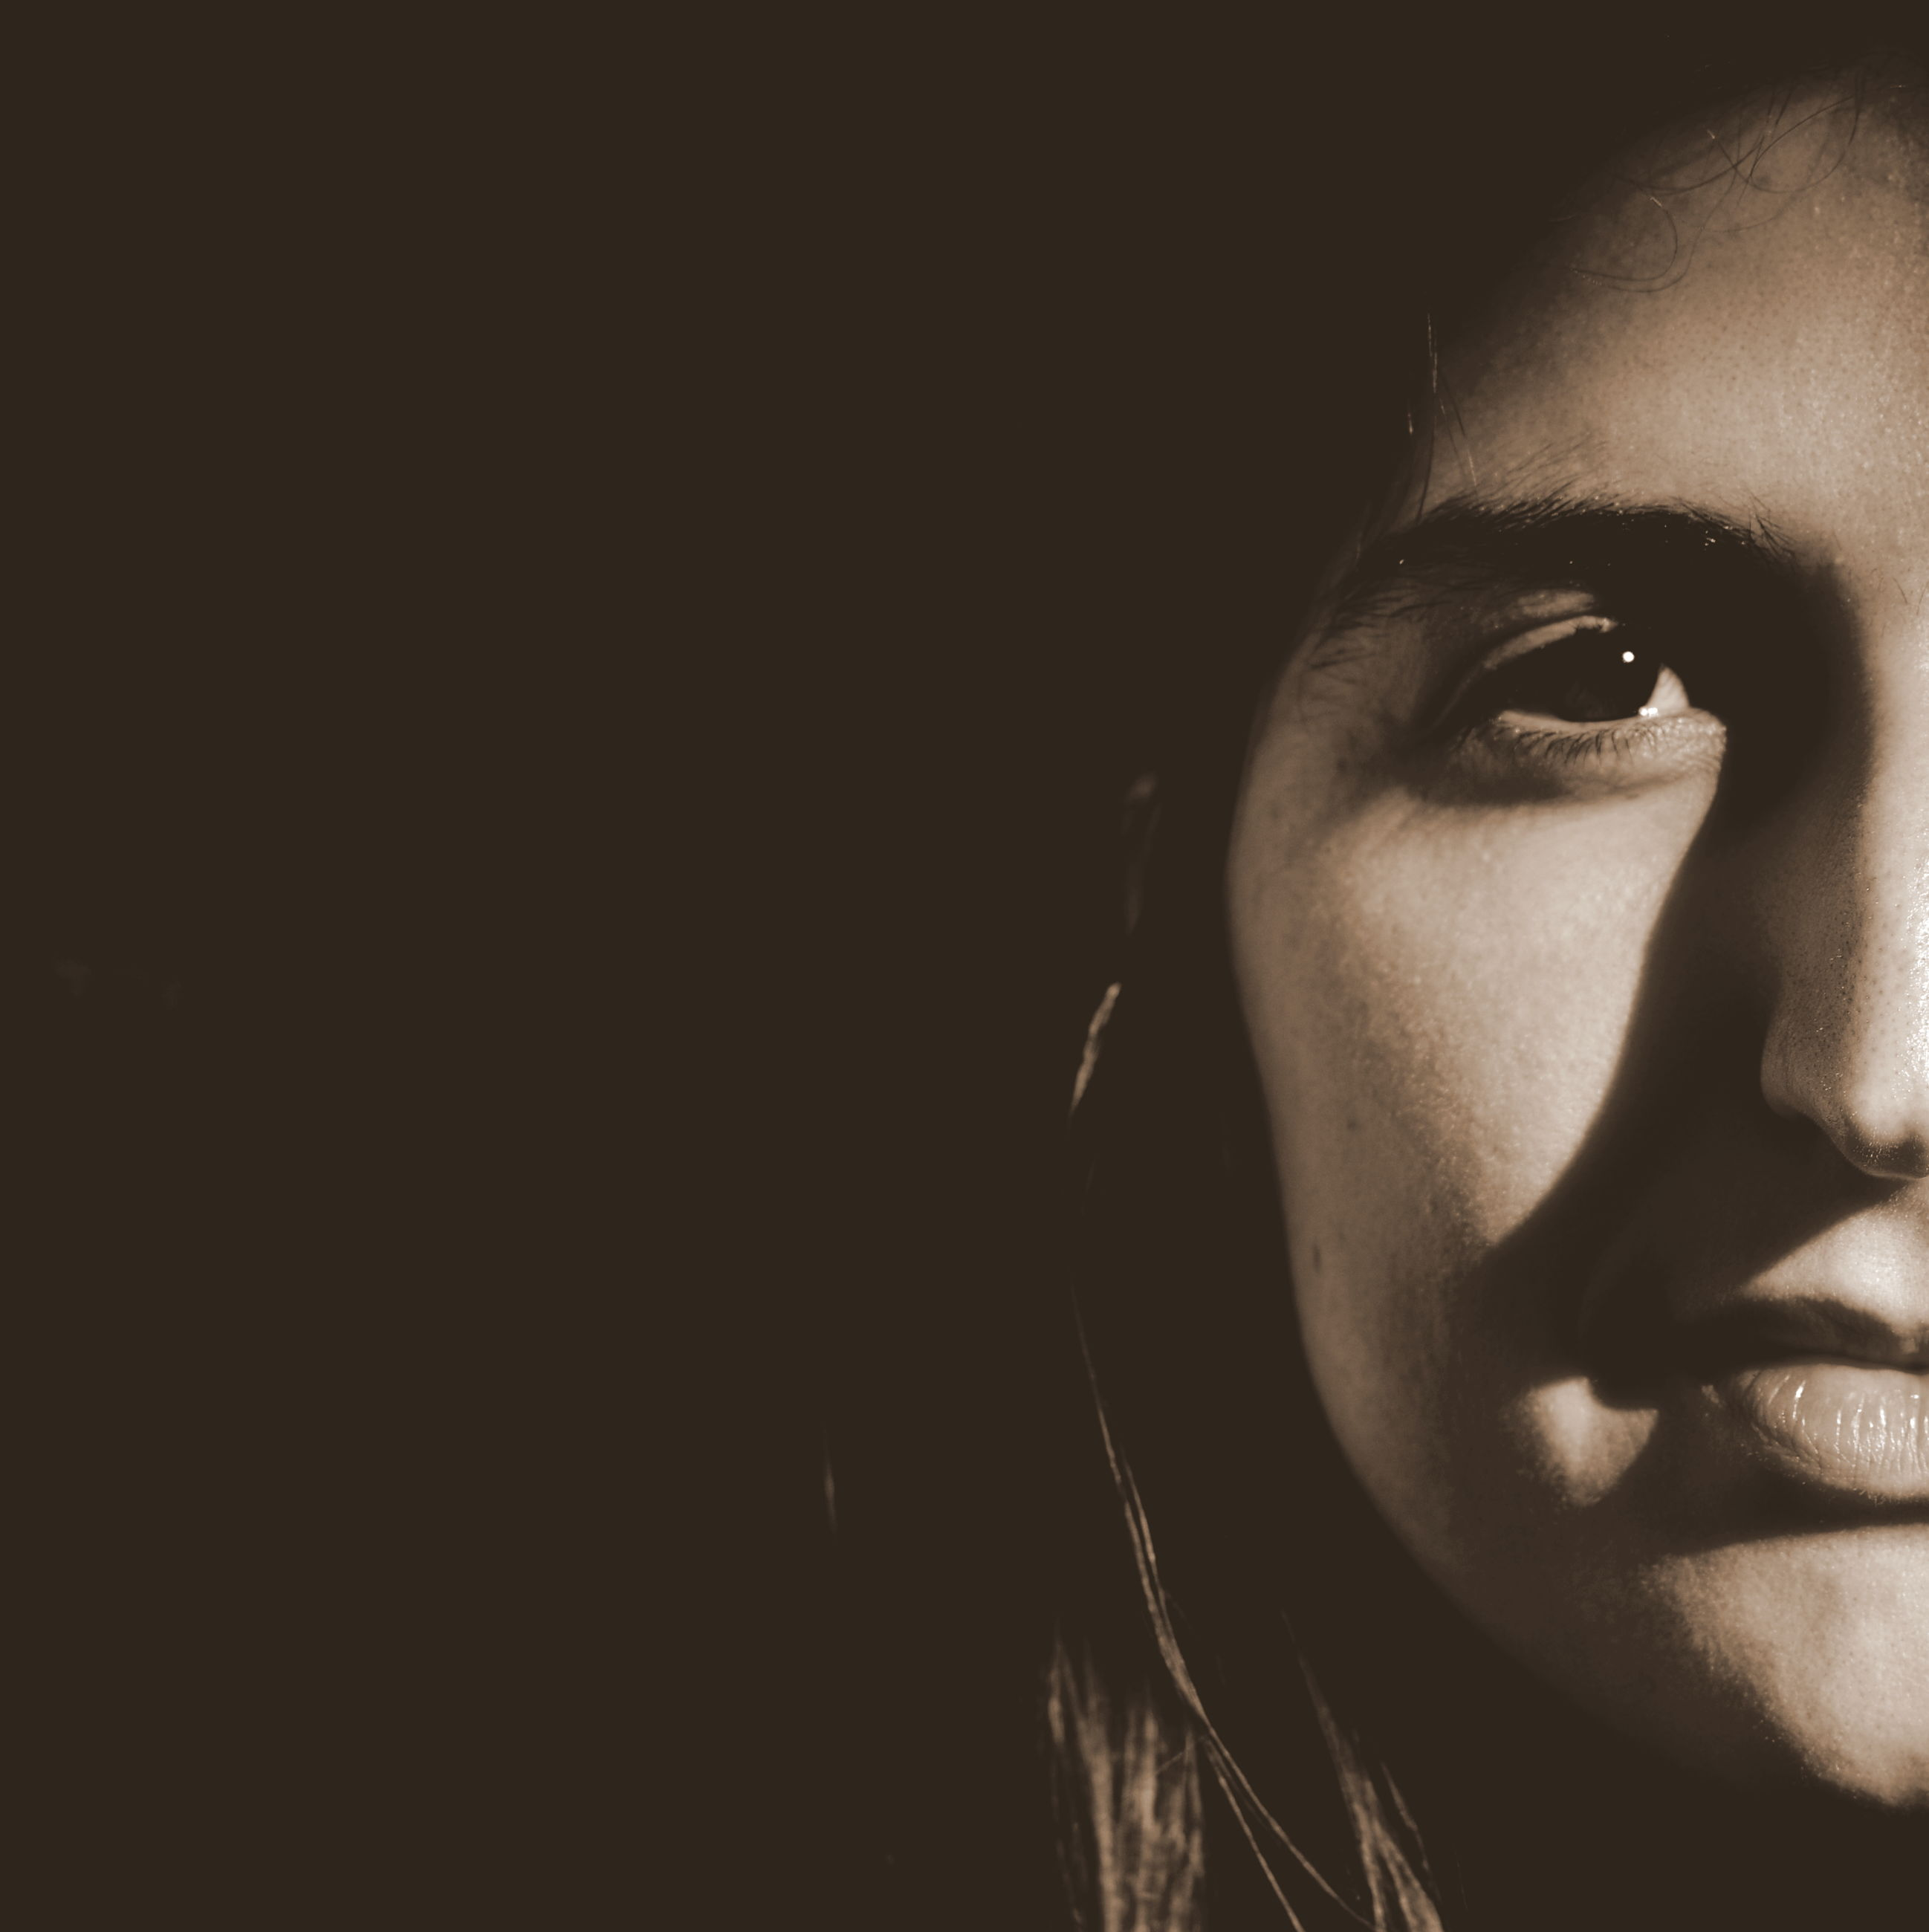 studio shot, black background, headshot, young adult, human face, portrait, close-up, looking at camera, front view, person, young women, lifestyles, copy space, indoors, head and shoulders, serious, contemplation